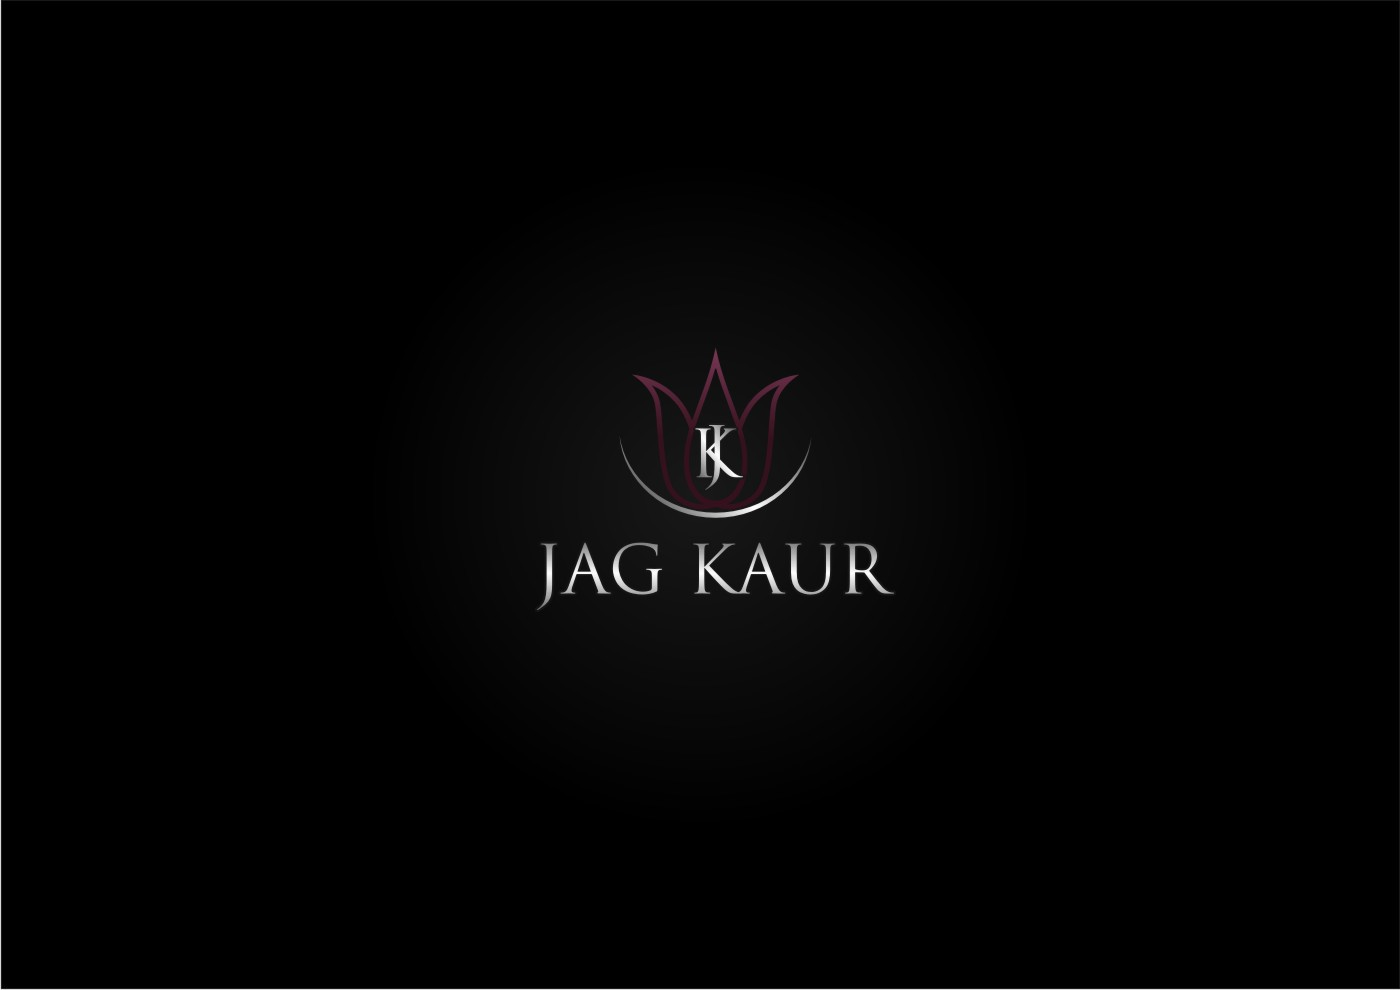 Jag Kaur needs a new logo